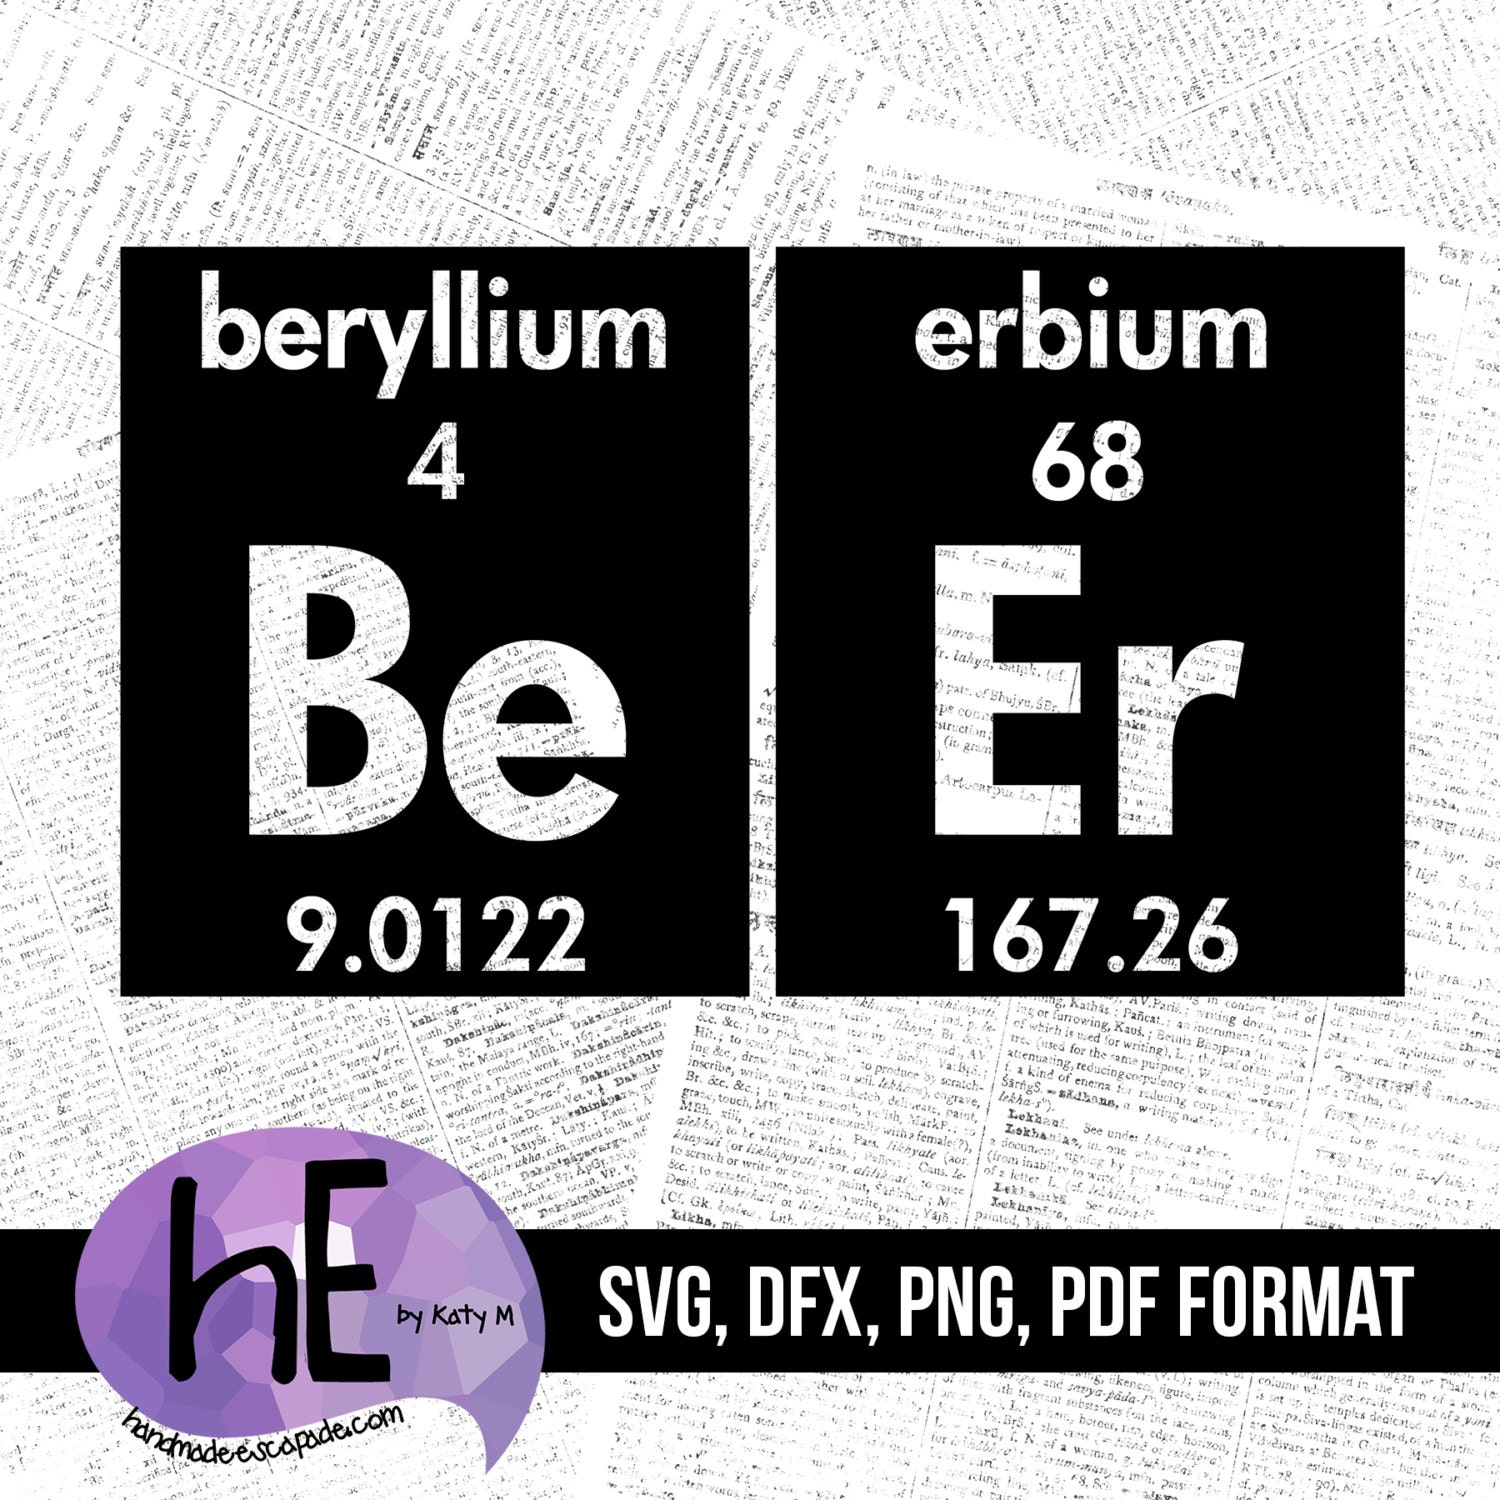 Genius periodic table chemical element cross stitch chart from beer periodic table svg pdf dxf png cut file for use with silhouette cameo cricut vinyl htv decor scrapbooking cardmaking gamestrikefo Image collections